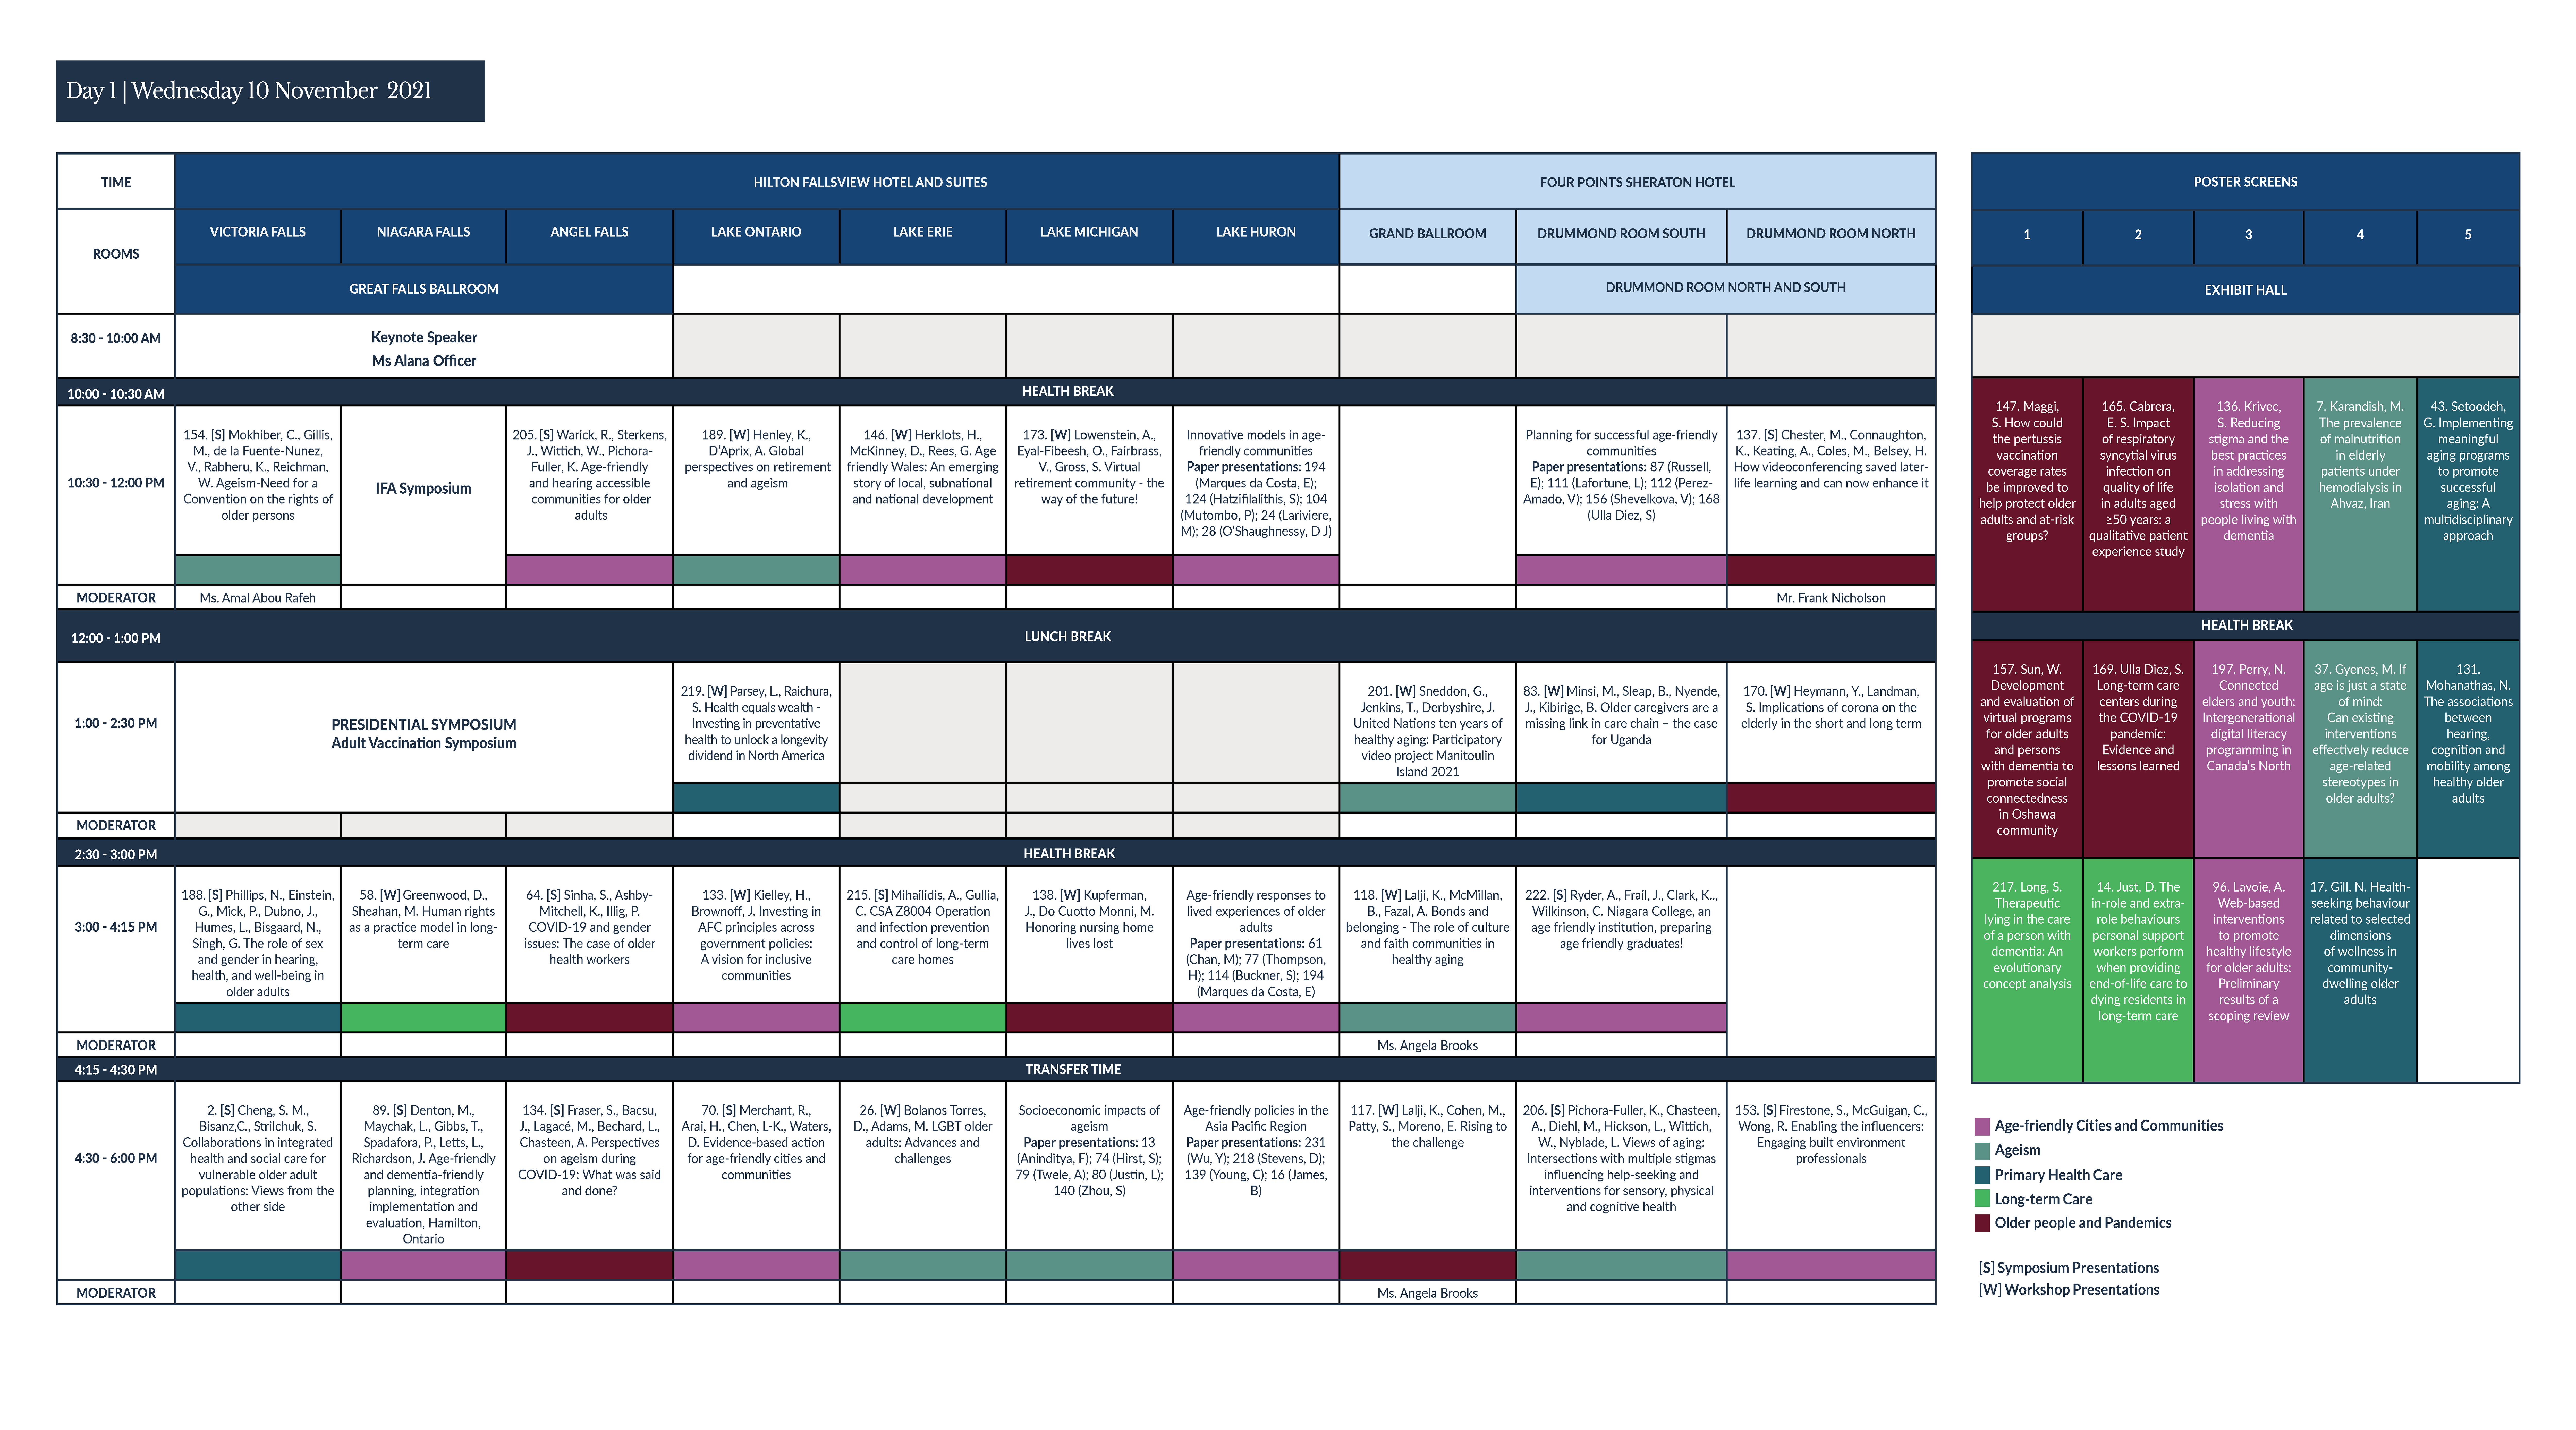 15th Global Conference on Ageing - Conference program_Page_1